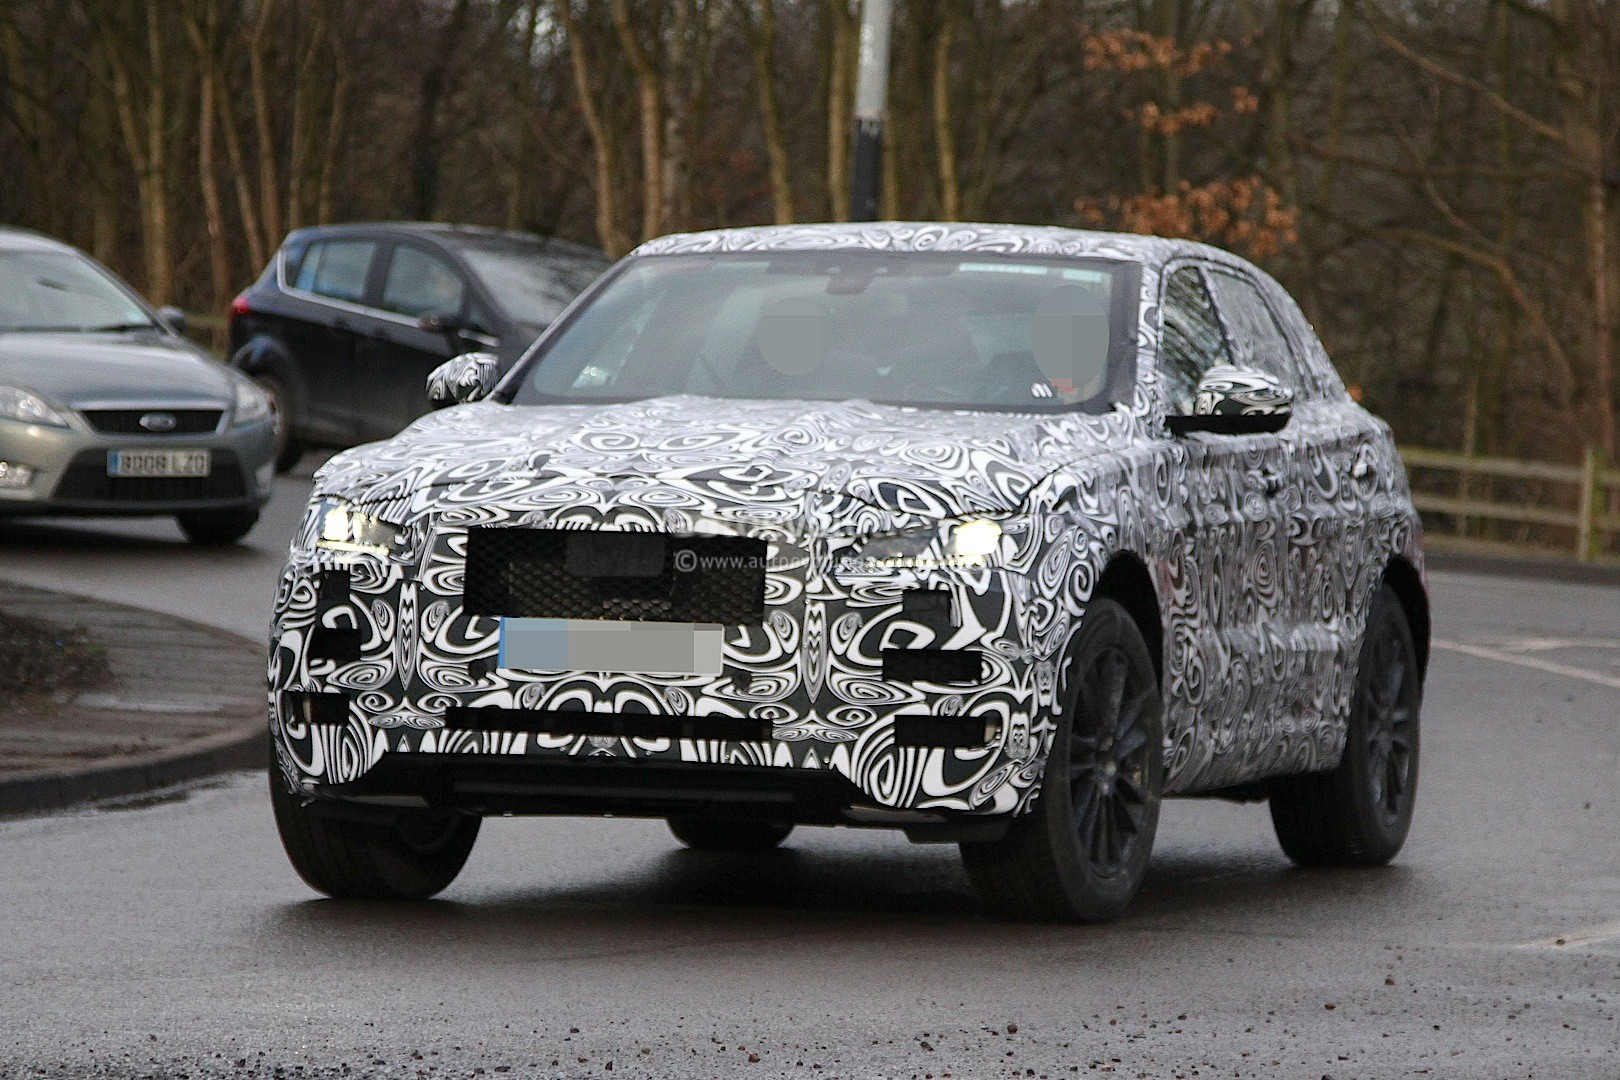 2016 Jaguar F-Pace SUV Spied Inside and Out - autoevolution